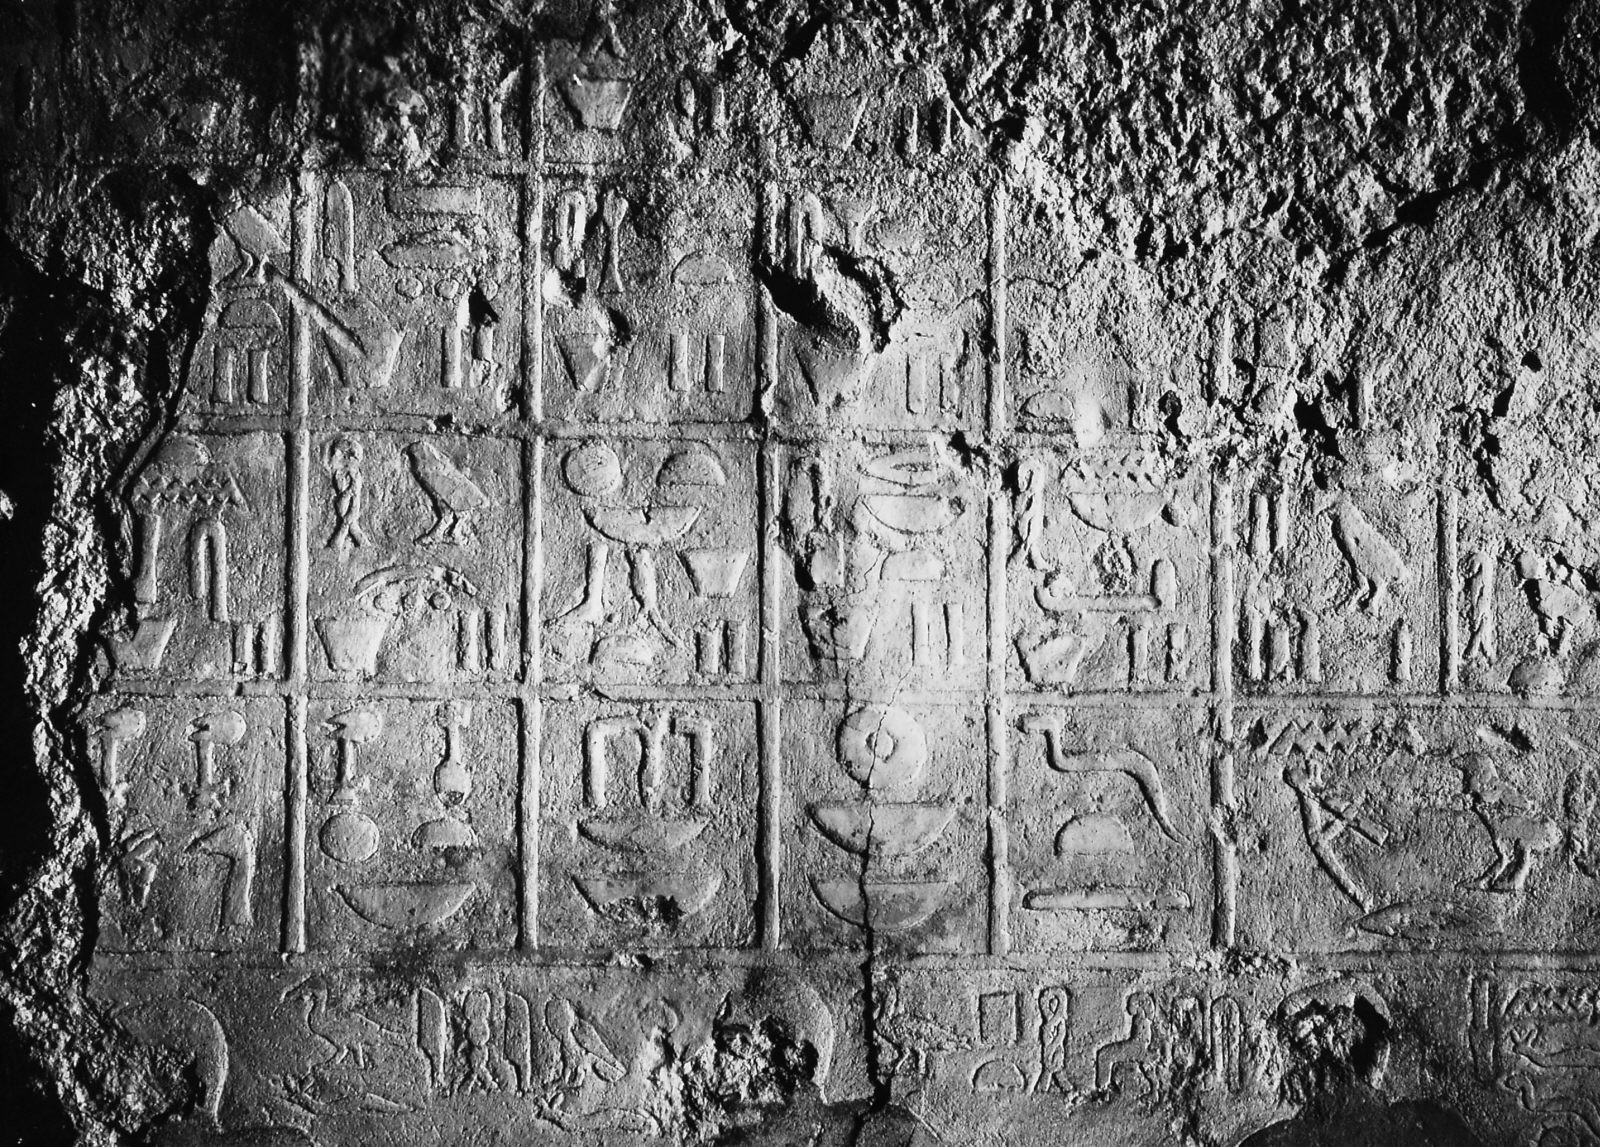 Mastaba of Meruka (2), chapel, western wall (middle), inscription (compartment offering list, immediately above bottom register of offering bearers carrying forelegs; heads of two of Meruka's sons, Ihiemsaf and Ptahshepses, visible), looking west. Photo ID KHM_AEOS_II_2715, photo and description courtesy of the Giza Archives maintained by Harvard University and the Museum of Fine Arts Boston, online at Digital Giza.